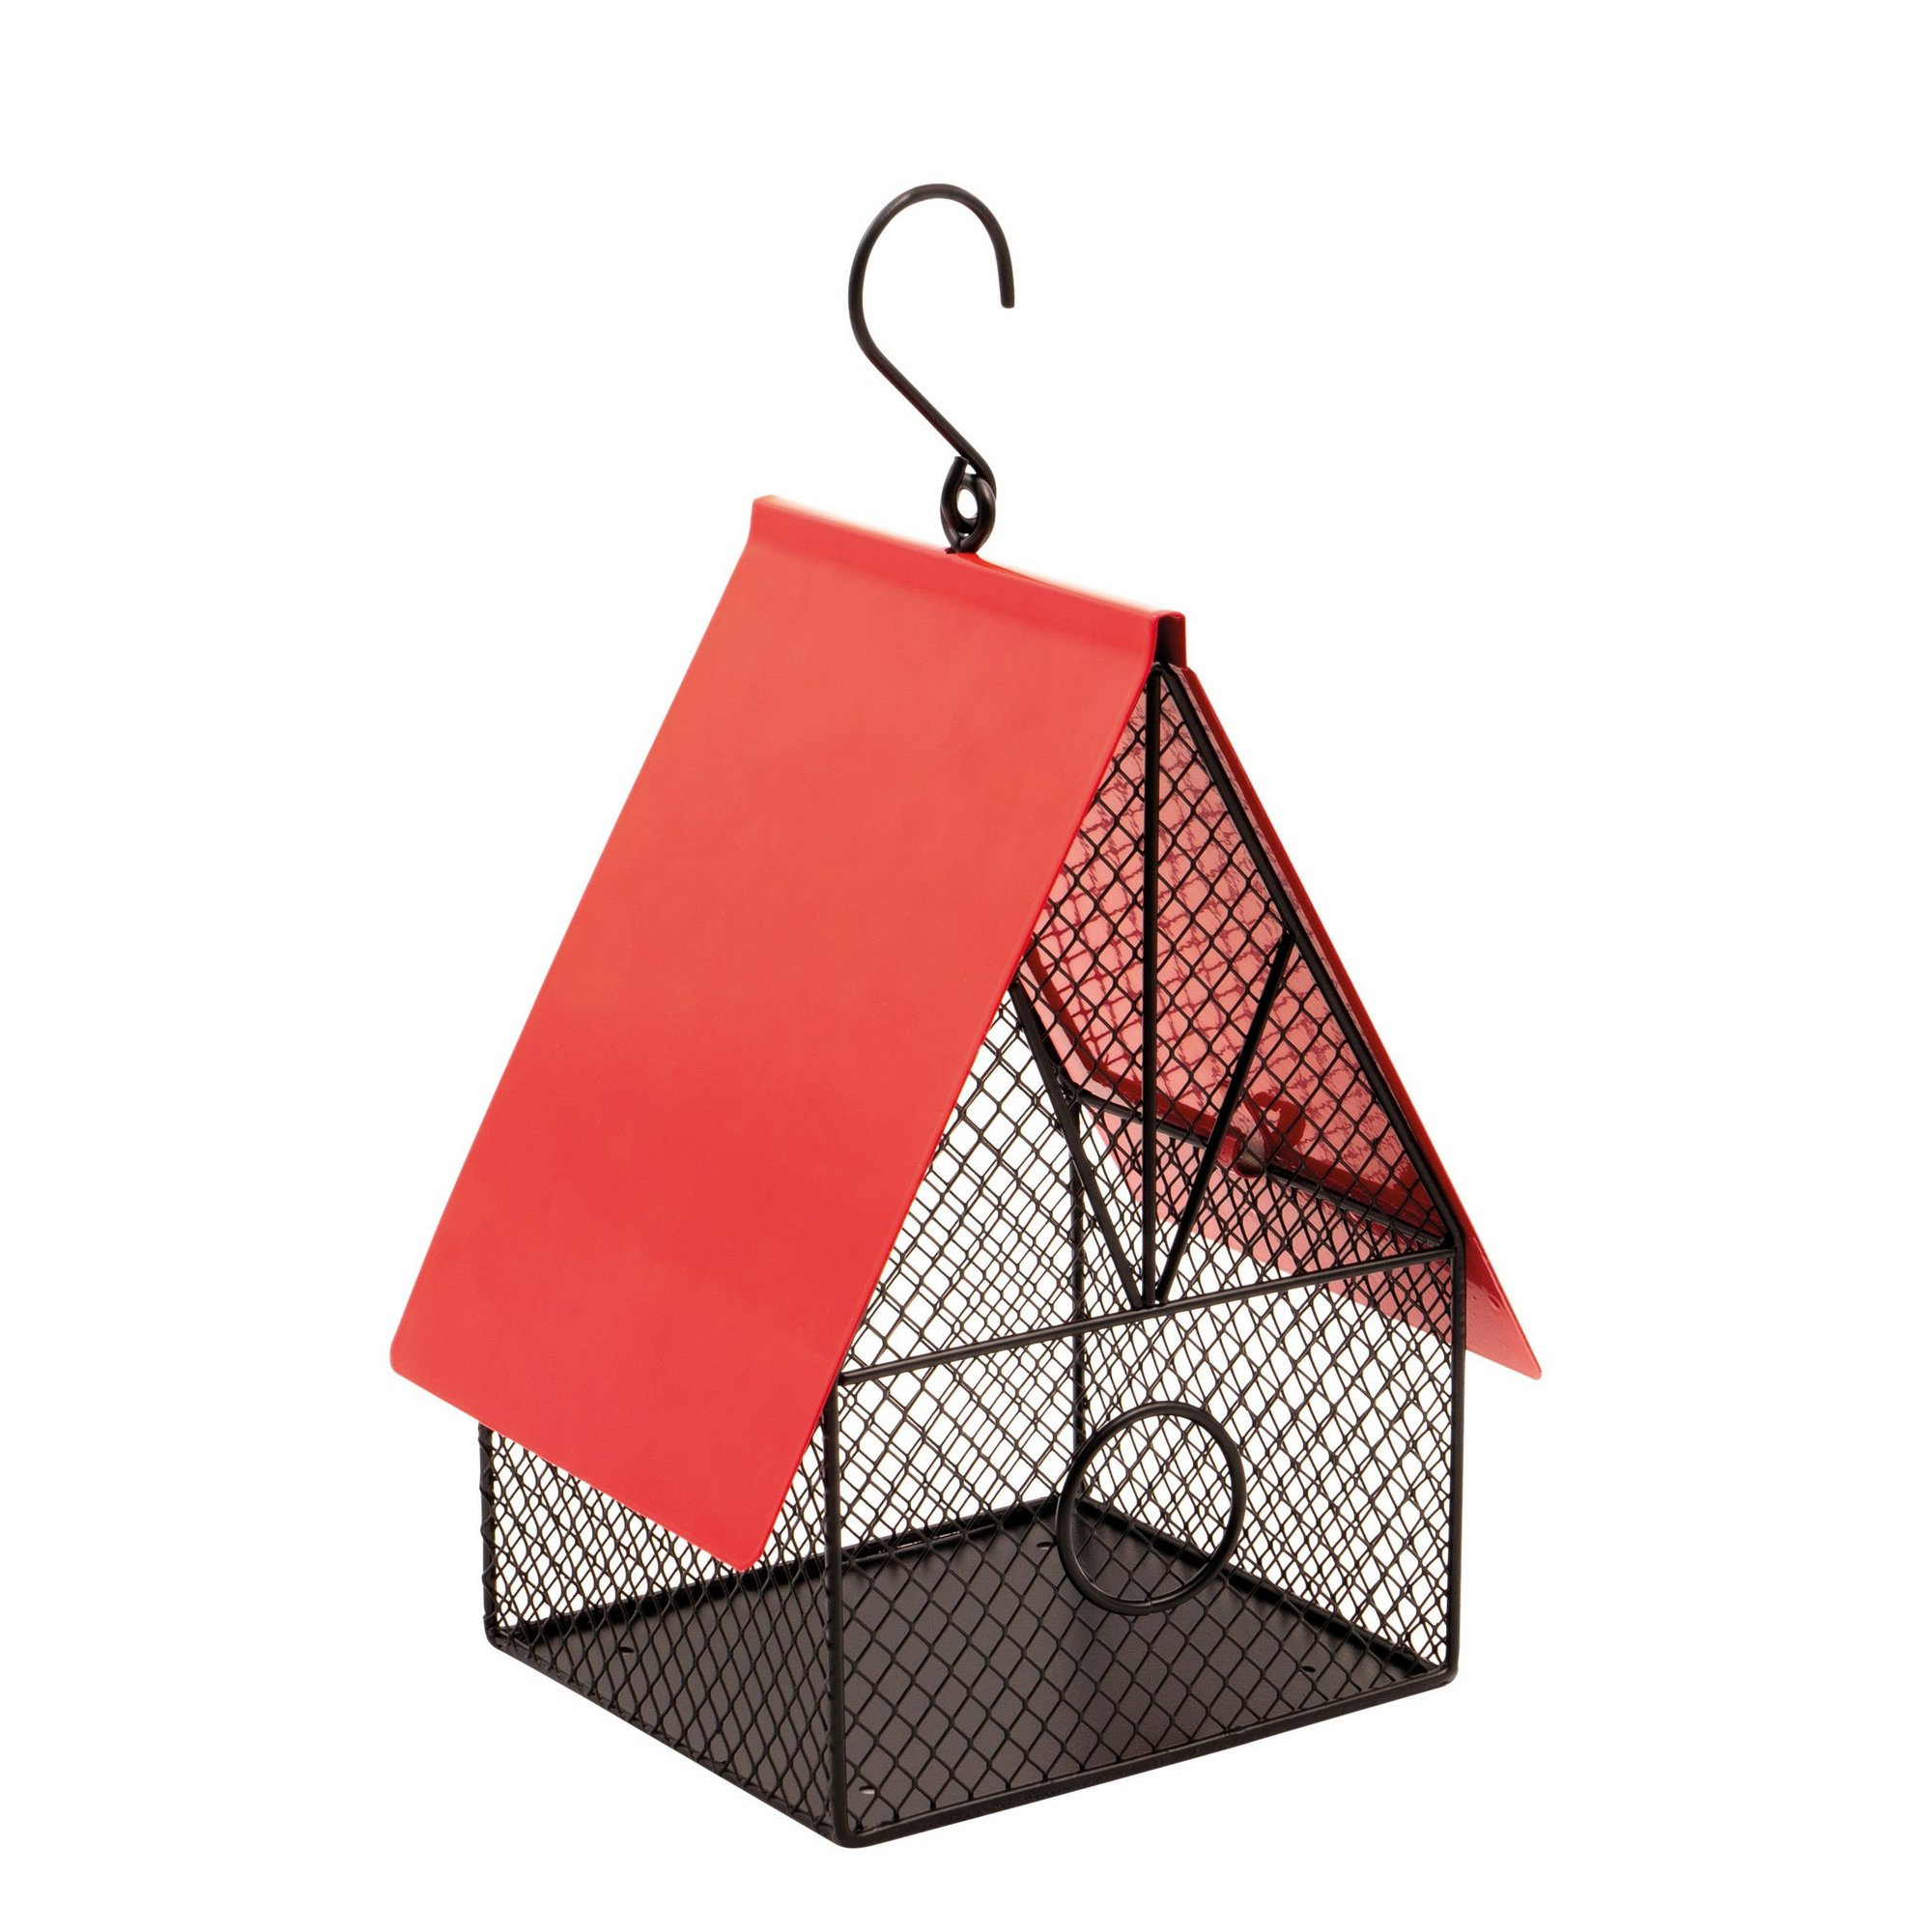 Image of Garden House Style Bird Feeder for Nuts